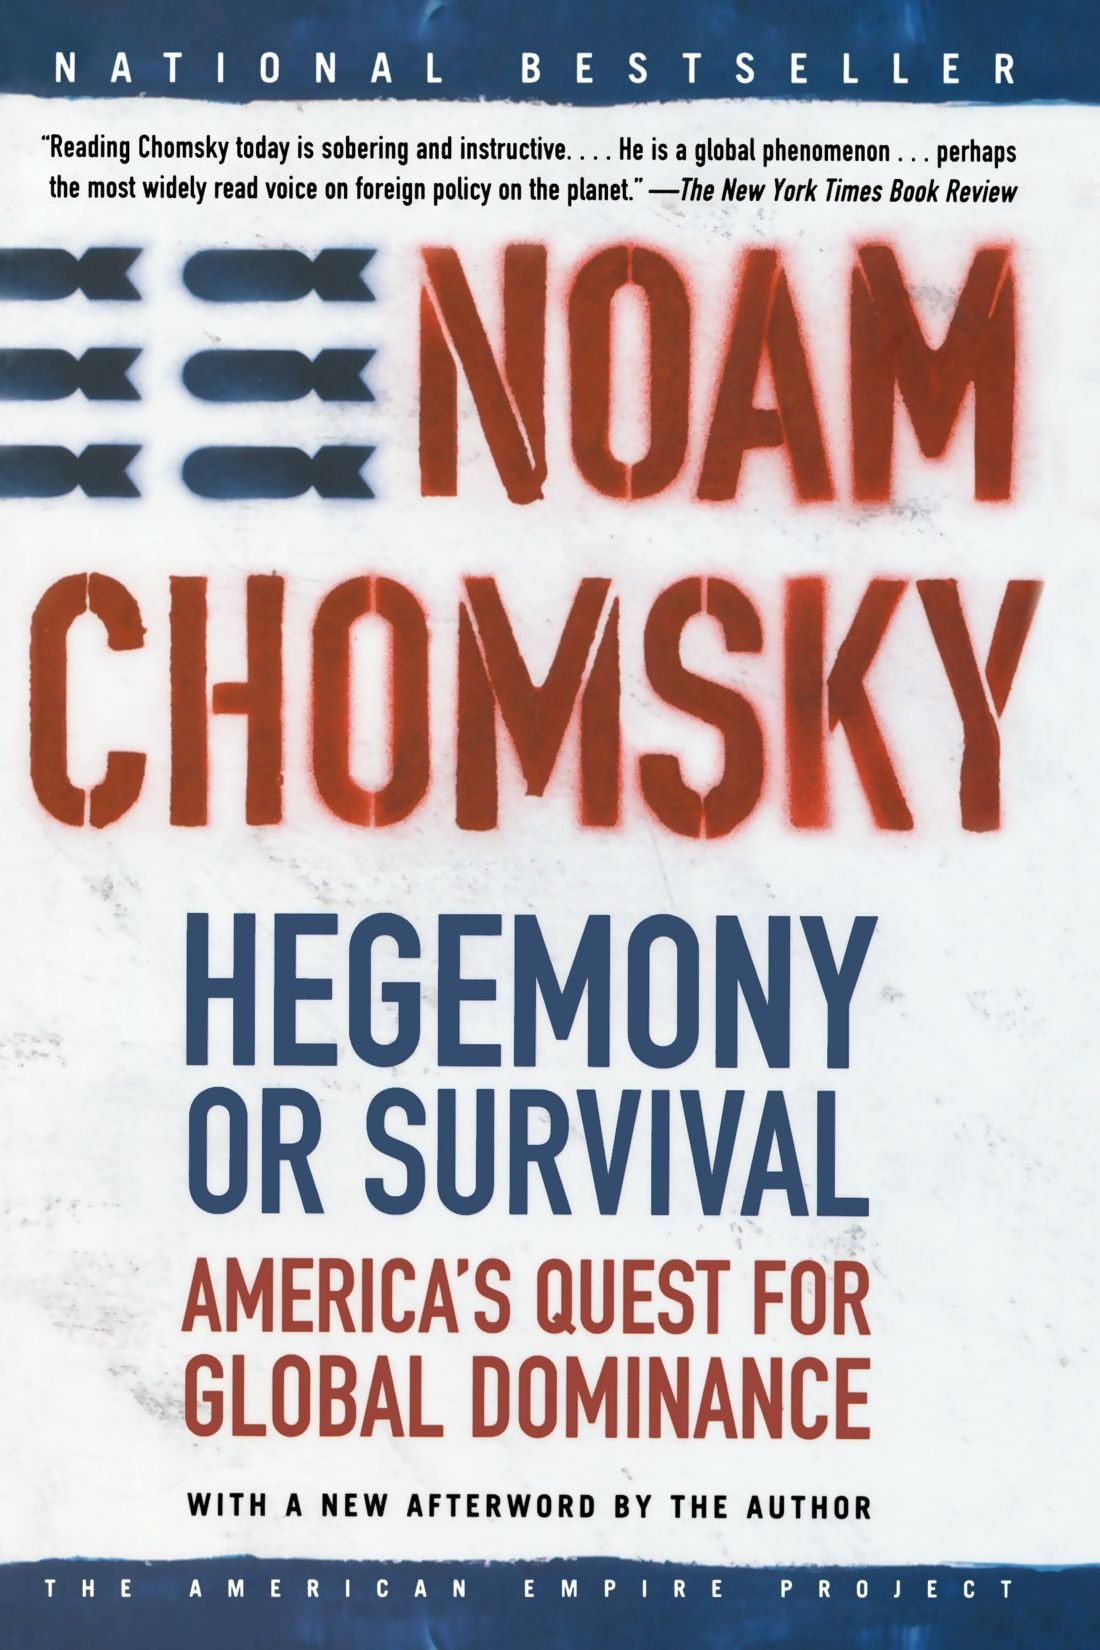 America domination global hegemony quest survival